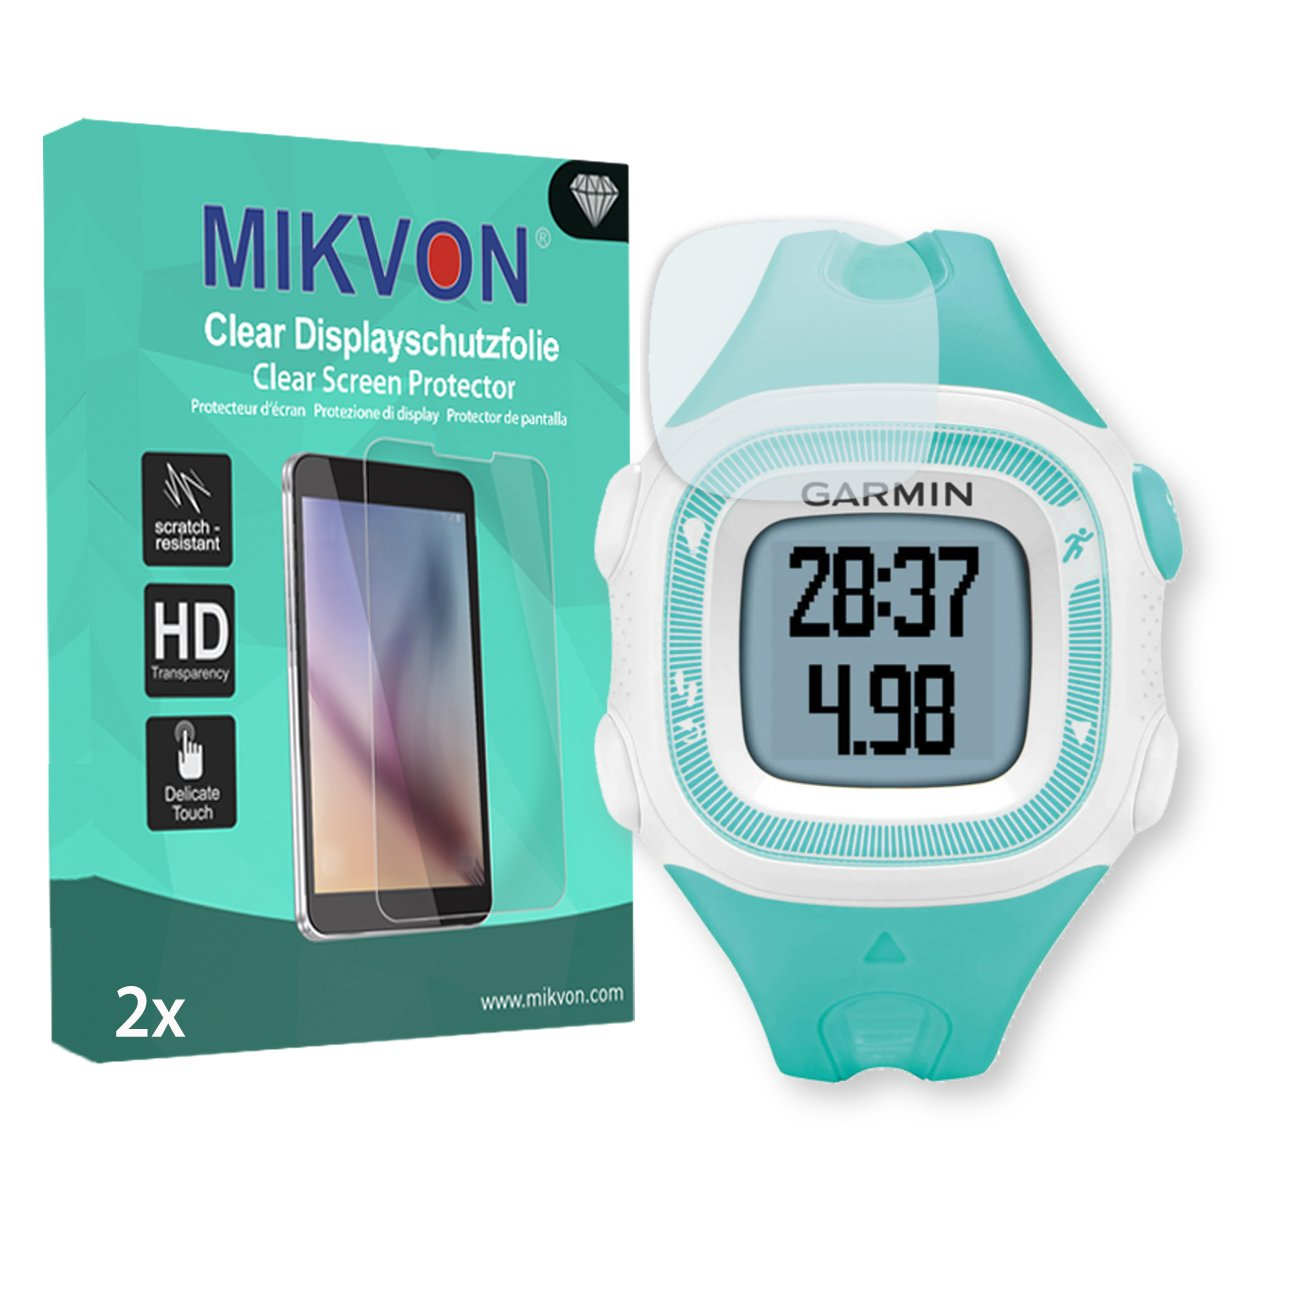 MIKVON 2X Clear Screen Protector for Garmin Forerunner 15 S - Retail Package with Accessories